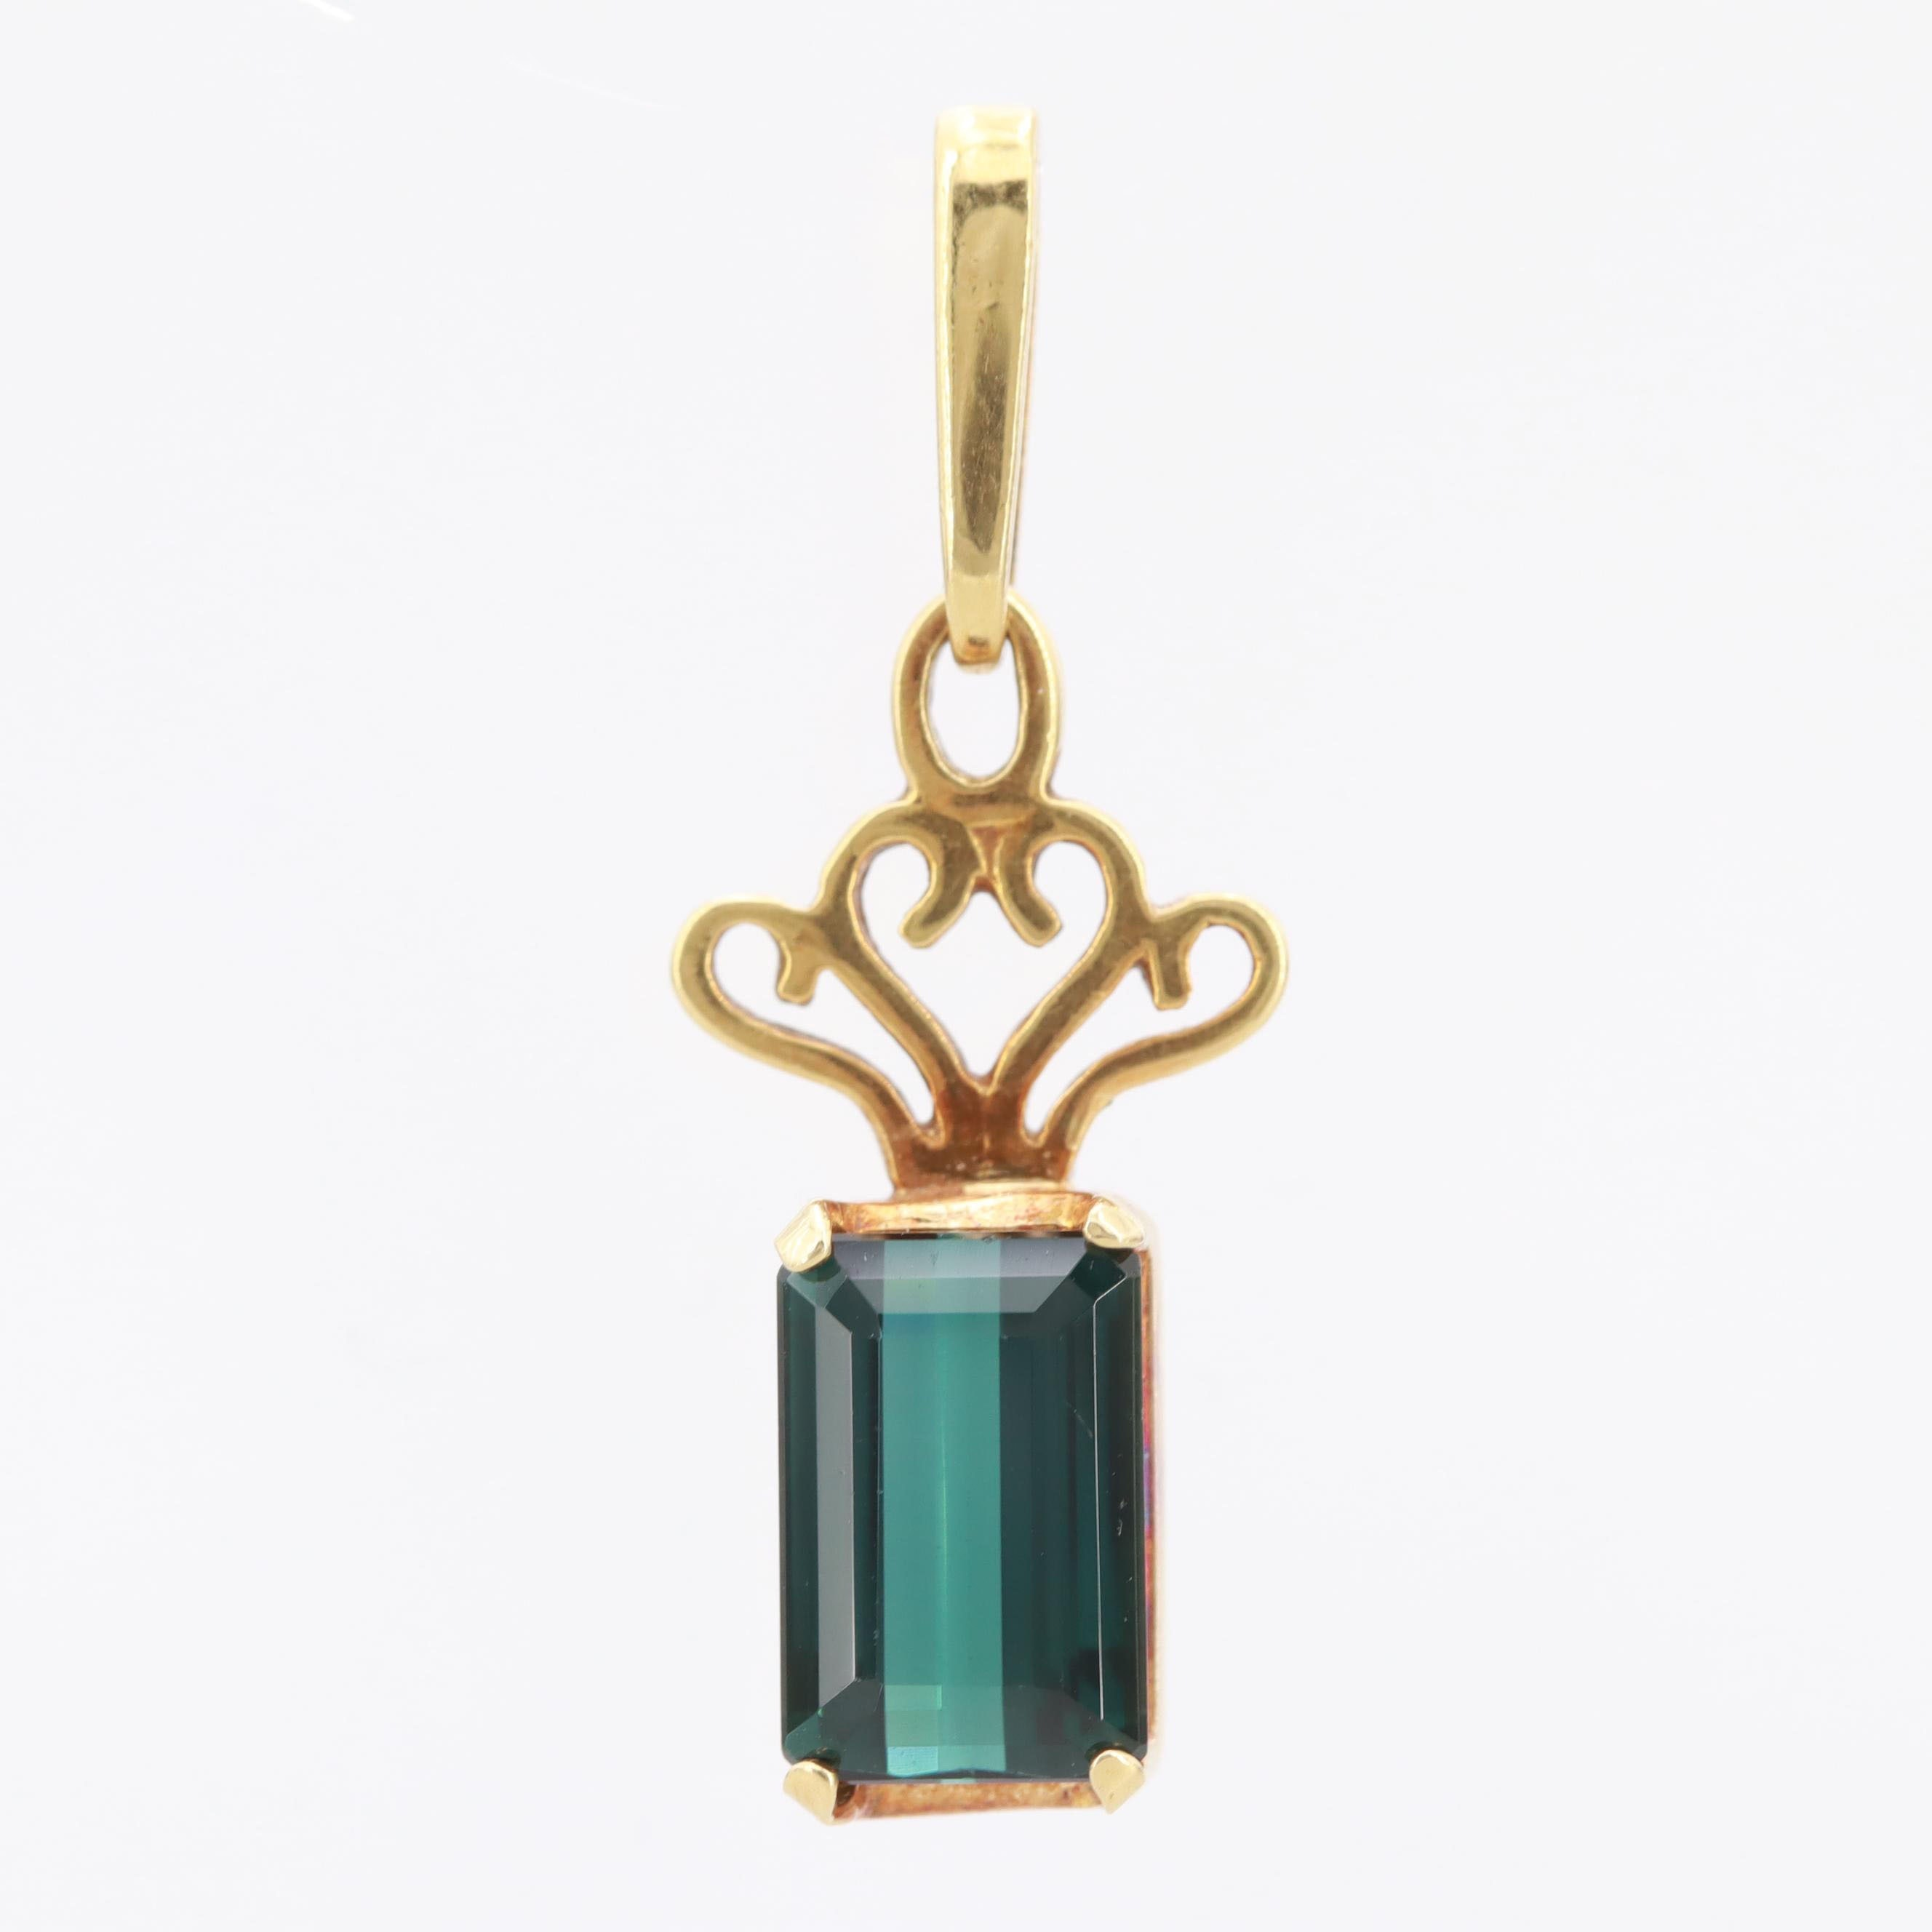 14K Yellow Gold  Tourmaline Pendant with 18K Yellow Gold  Bail and Top Trim